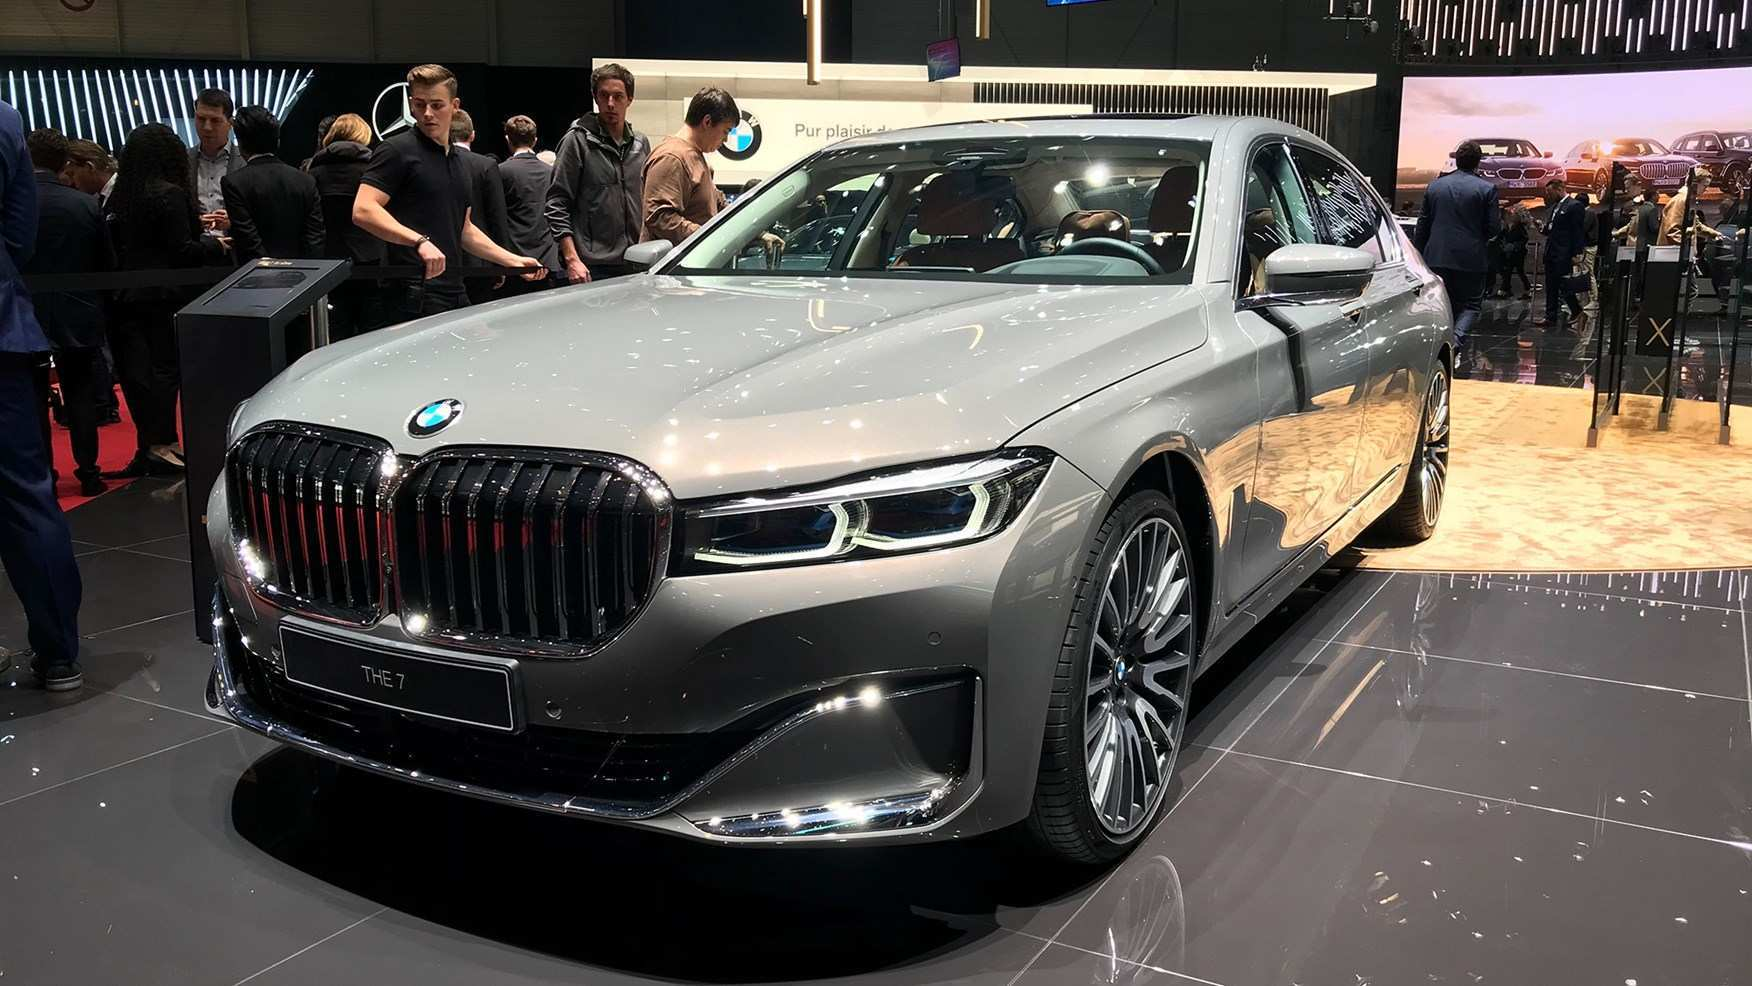 18 New 2019 Bmw Reveal Review by 2019 Bmw Reveal